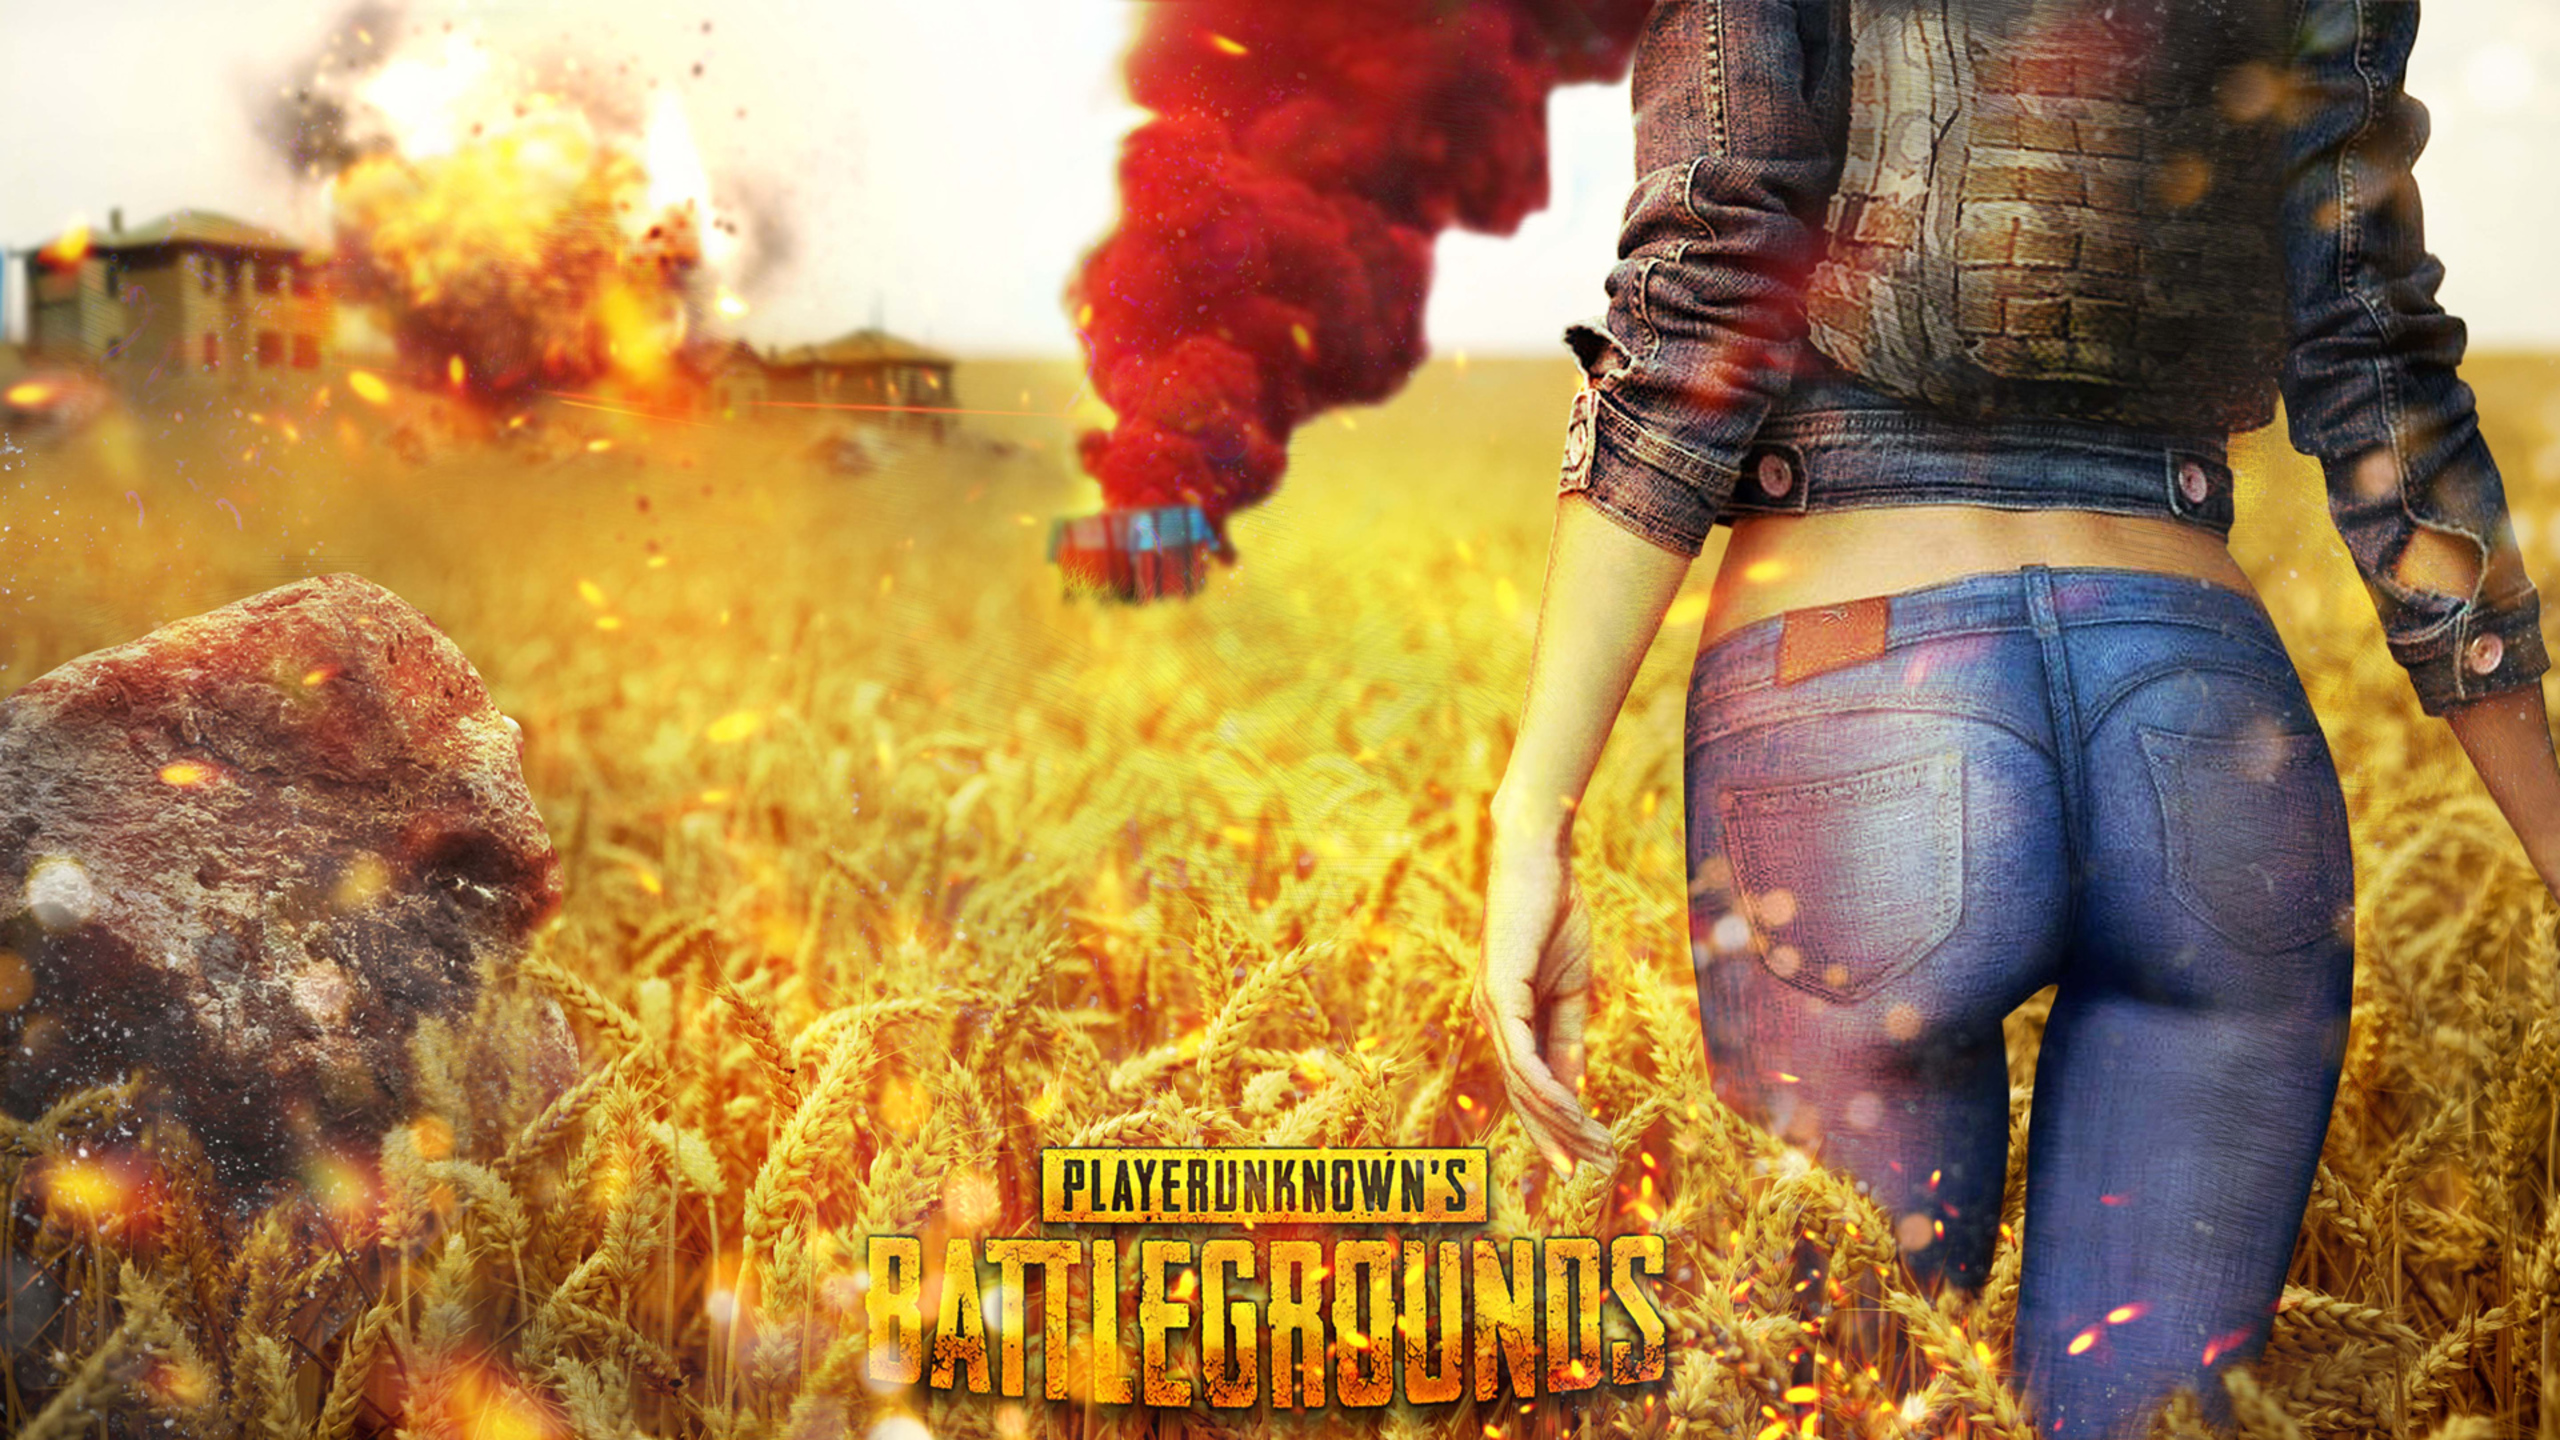 2560x1440 Playerunknowns Battlegrounds 1080p 1440p Resolution Hd 4k